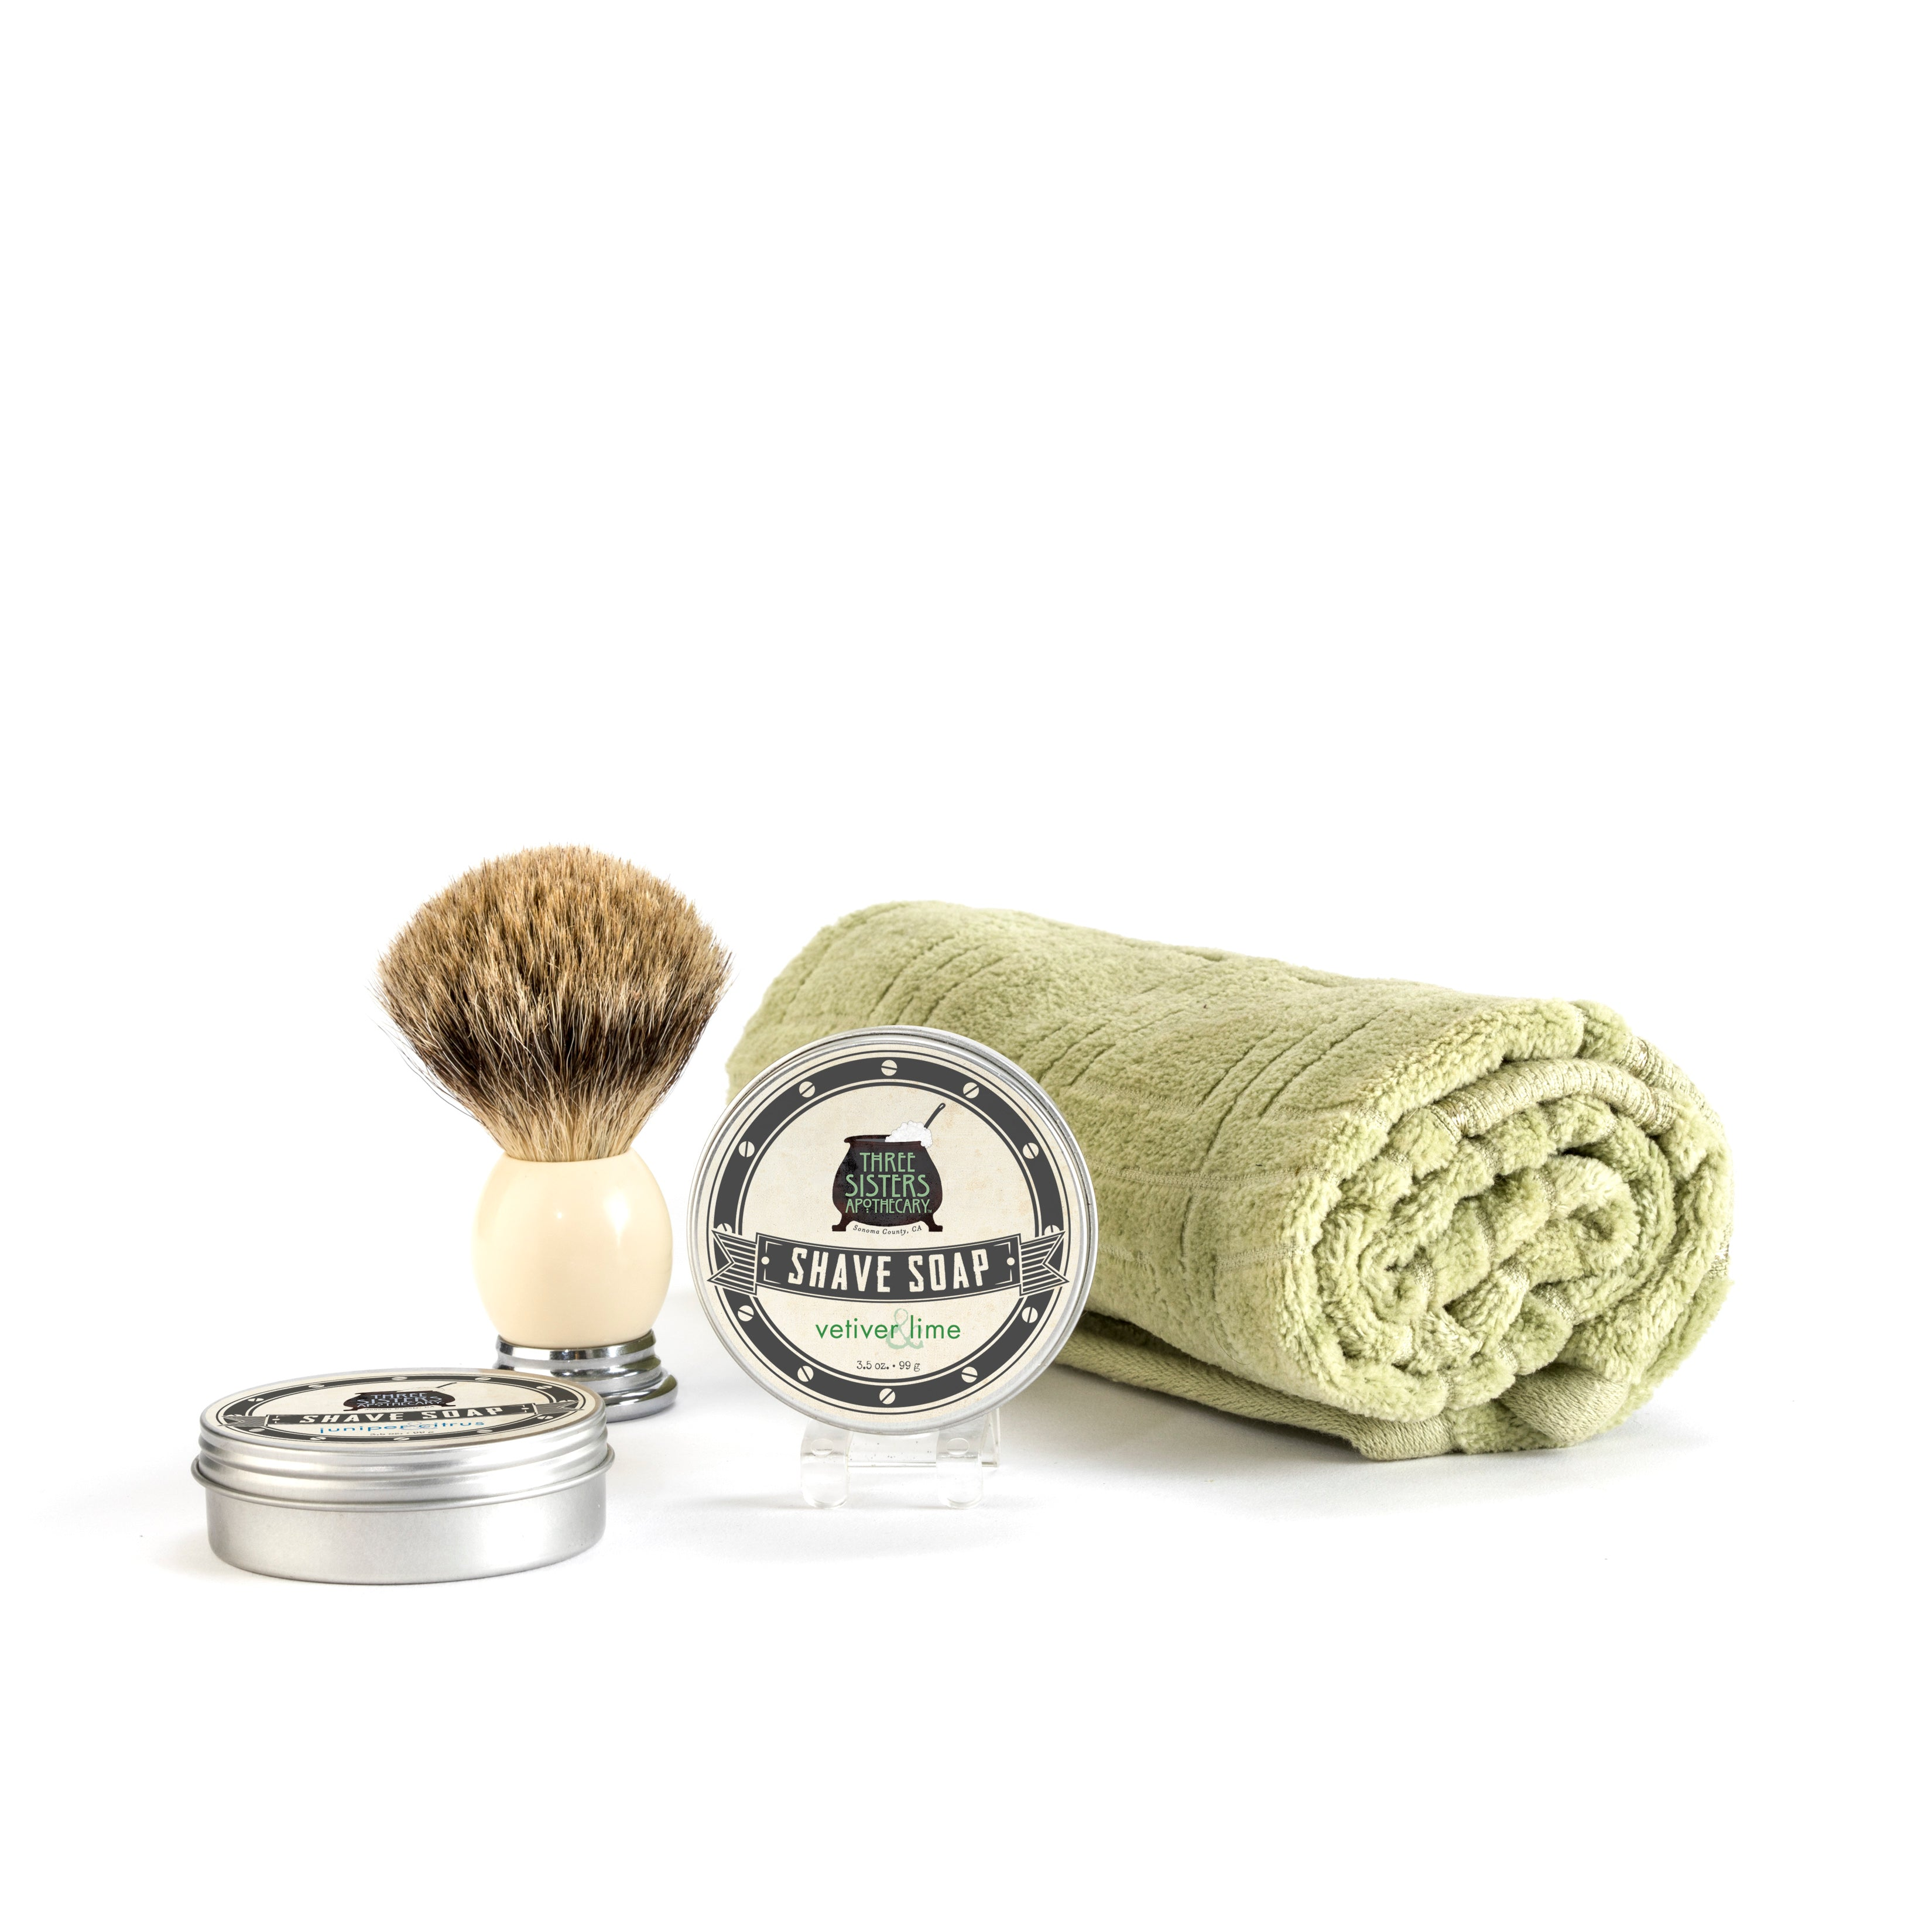 Vetiver & Lime Shave Soap 3.5 oz.